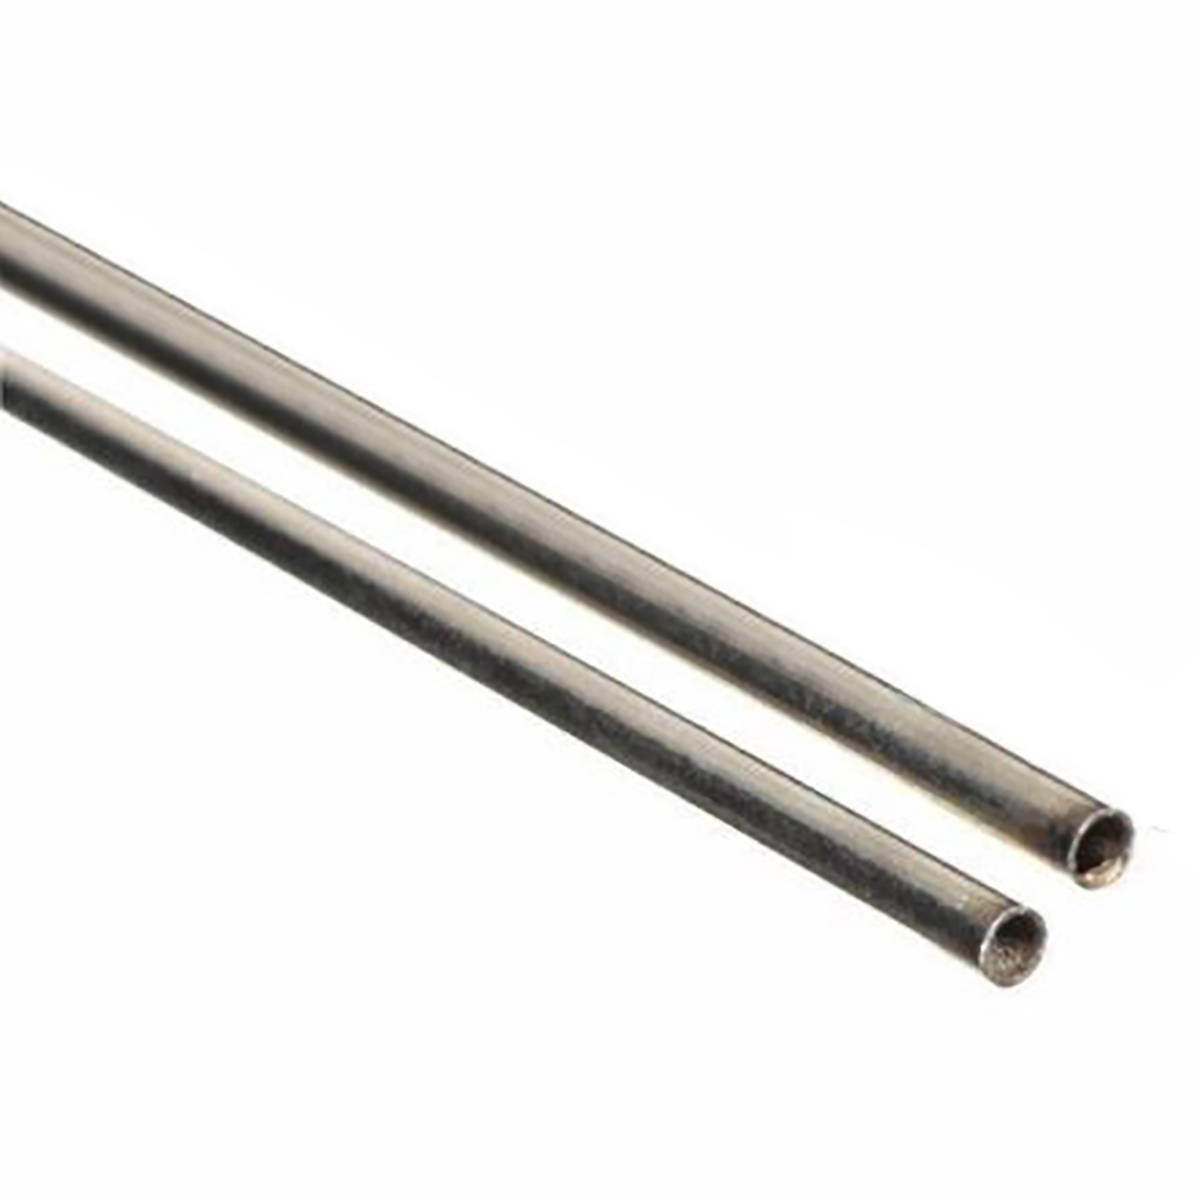 10pcs Silver 304 Stainless Steel Capillary Tube 2mm OD 1.6mm ID 500mm Length steel casing pipe